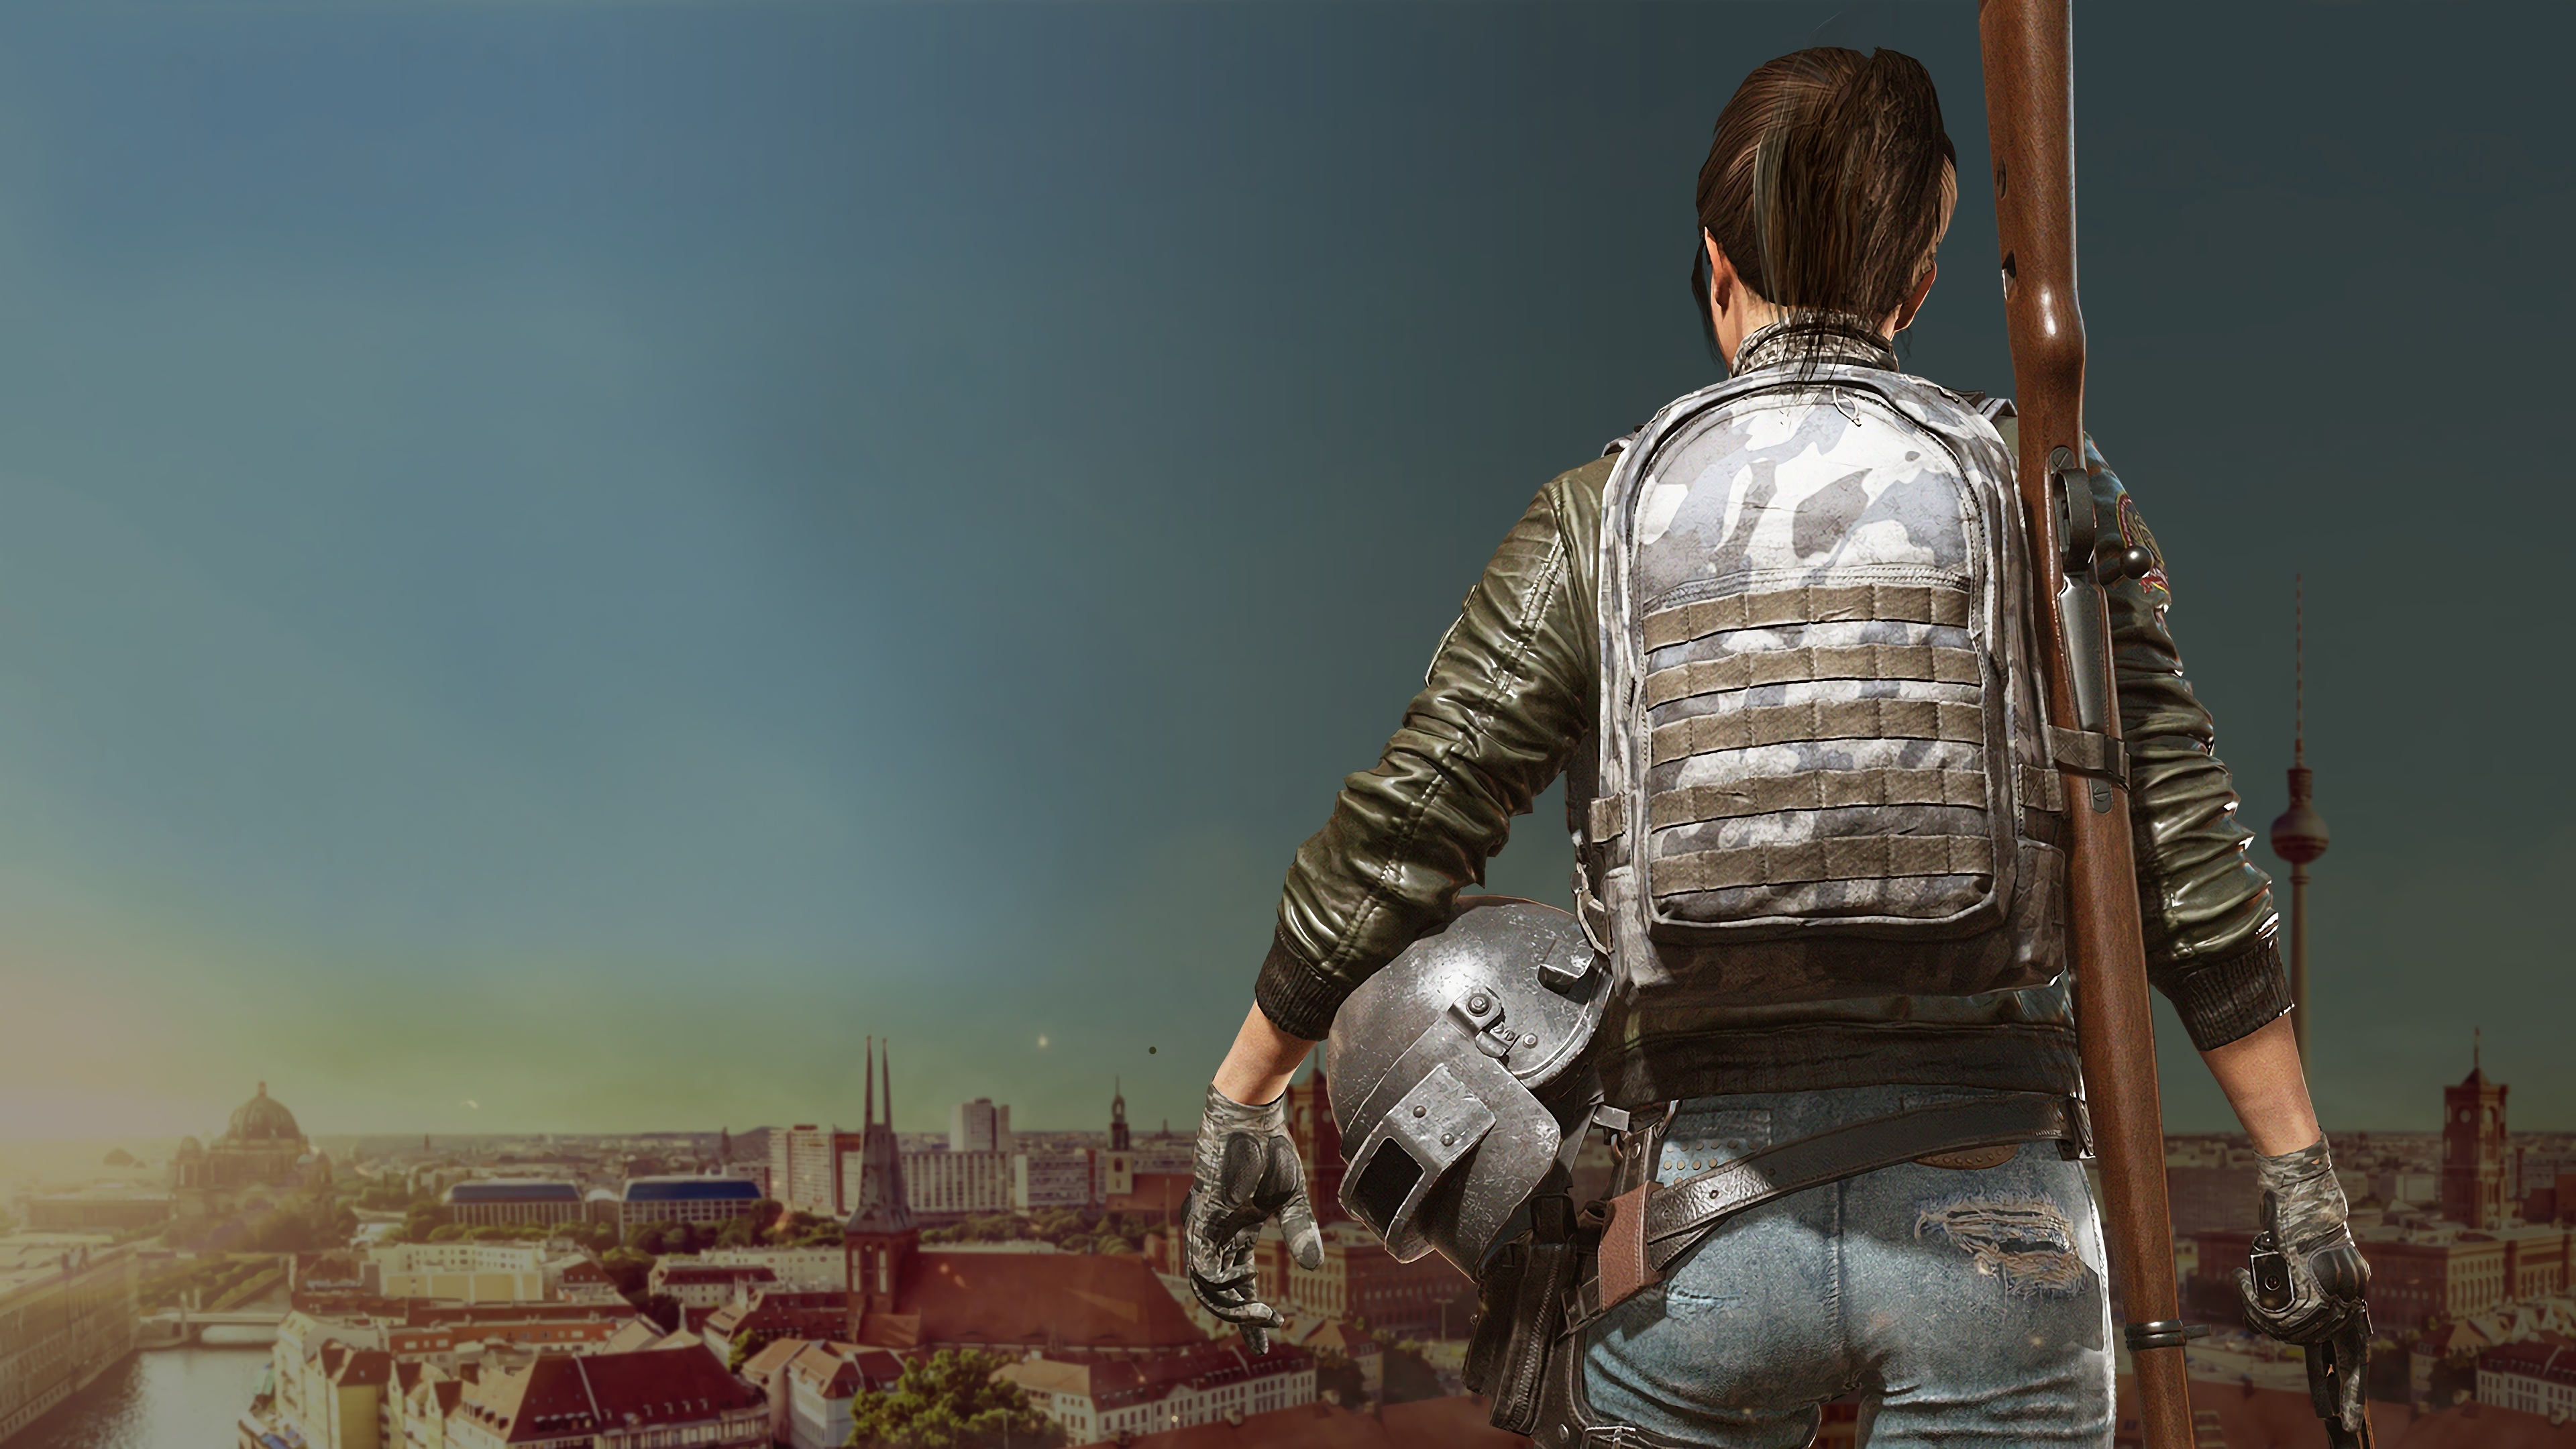 2048x1152 Pubg Bike Rider 4k 2048x1152 Resolution Hd 4k: Game Girl Pubg 4k, HD Games, 4k Wallpapers, Images